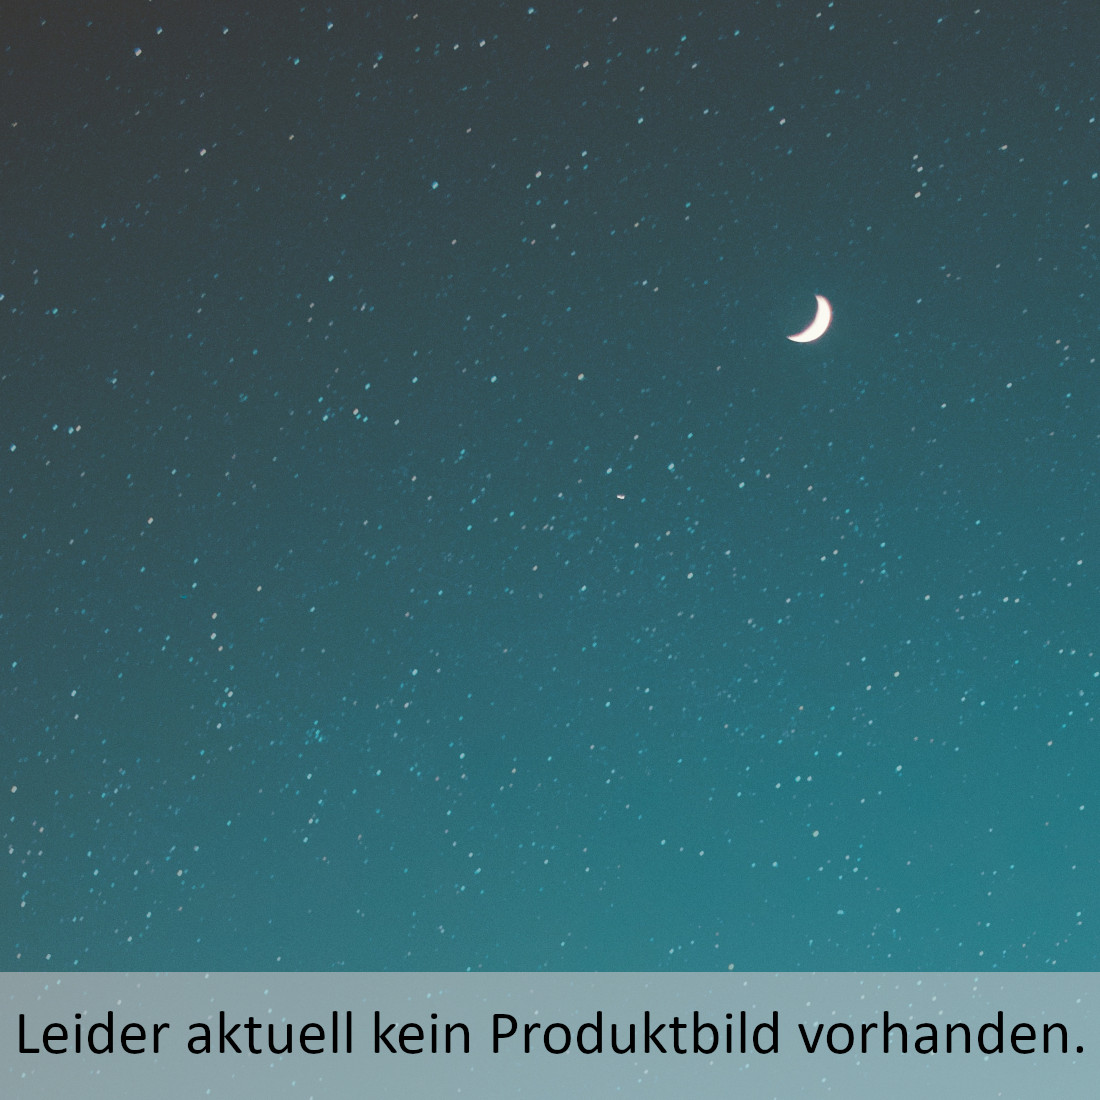 meditationen-stilleuebungen-cover-jg-769819717-01.jpg